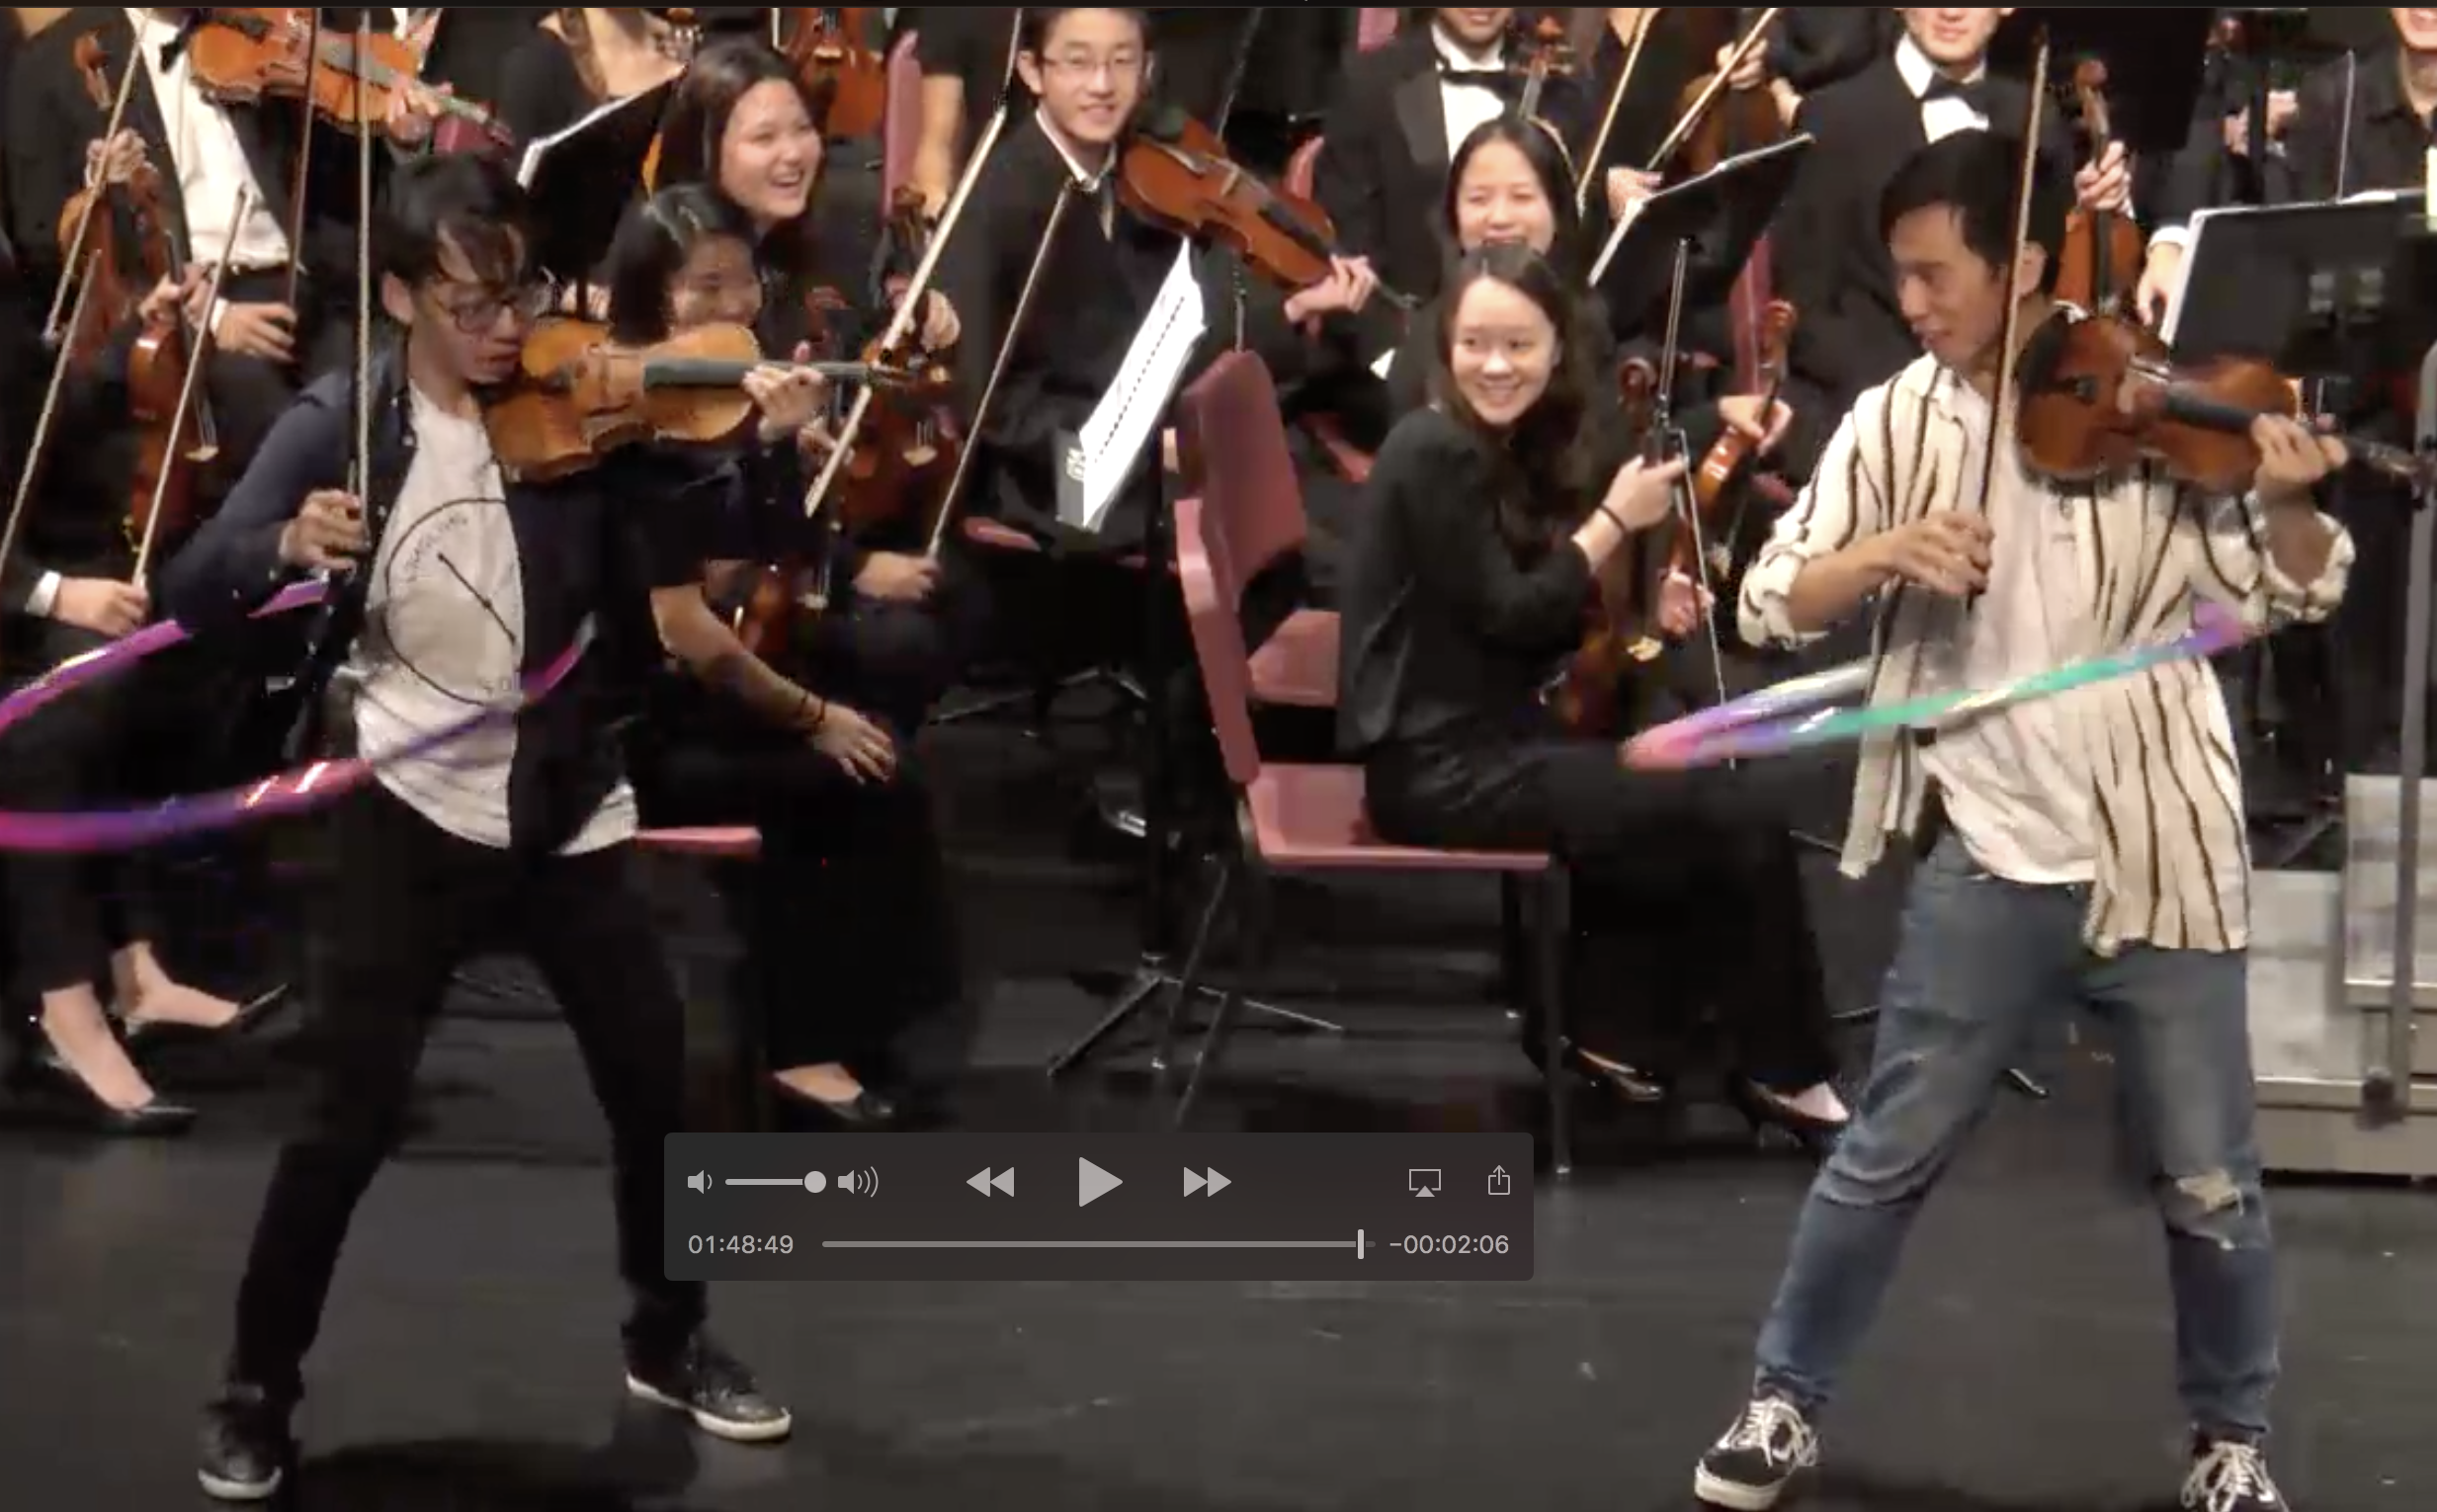 Concert Recording: TwoSet Violin - October 21, 2018